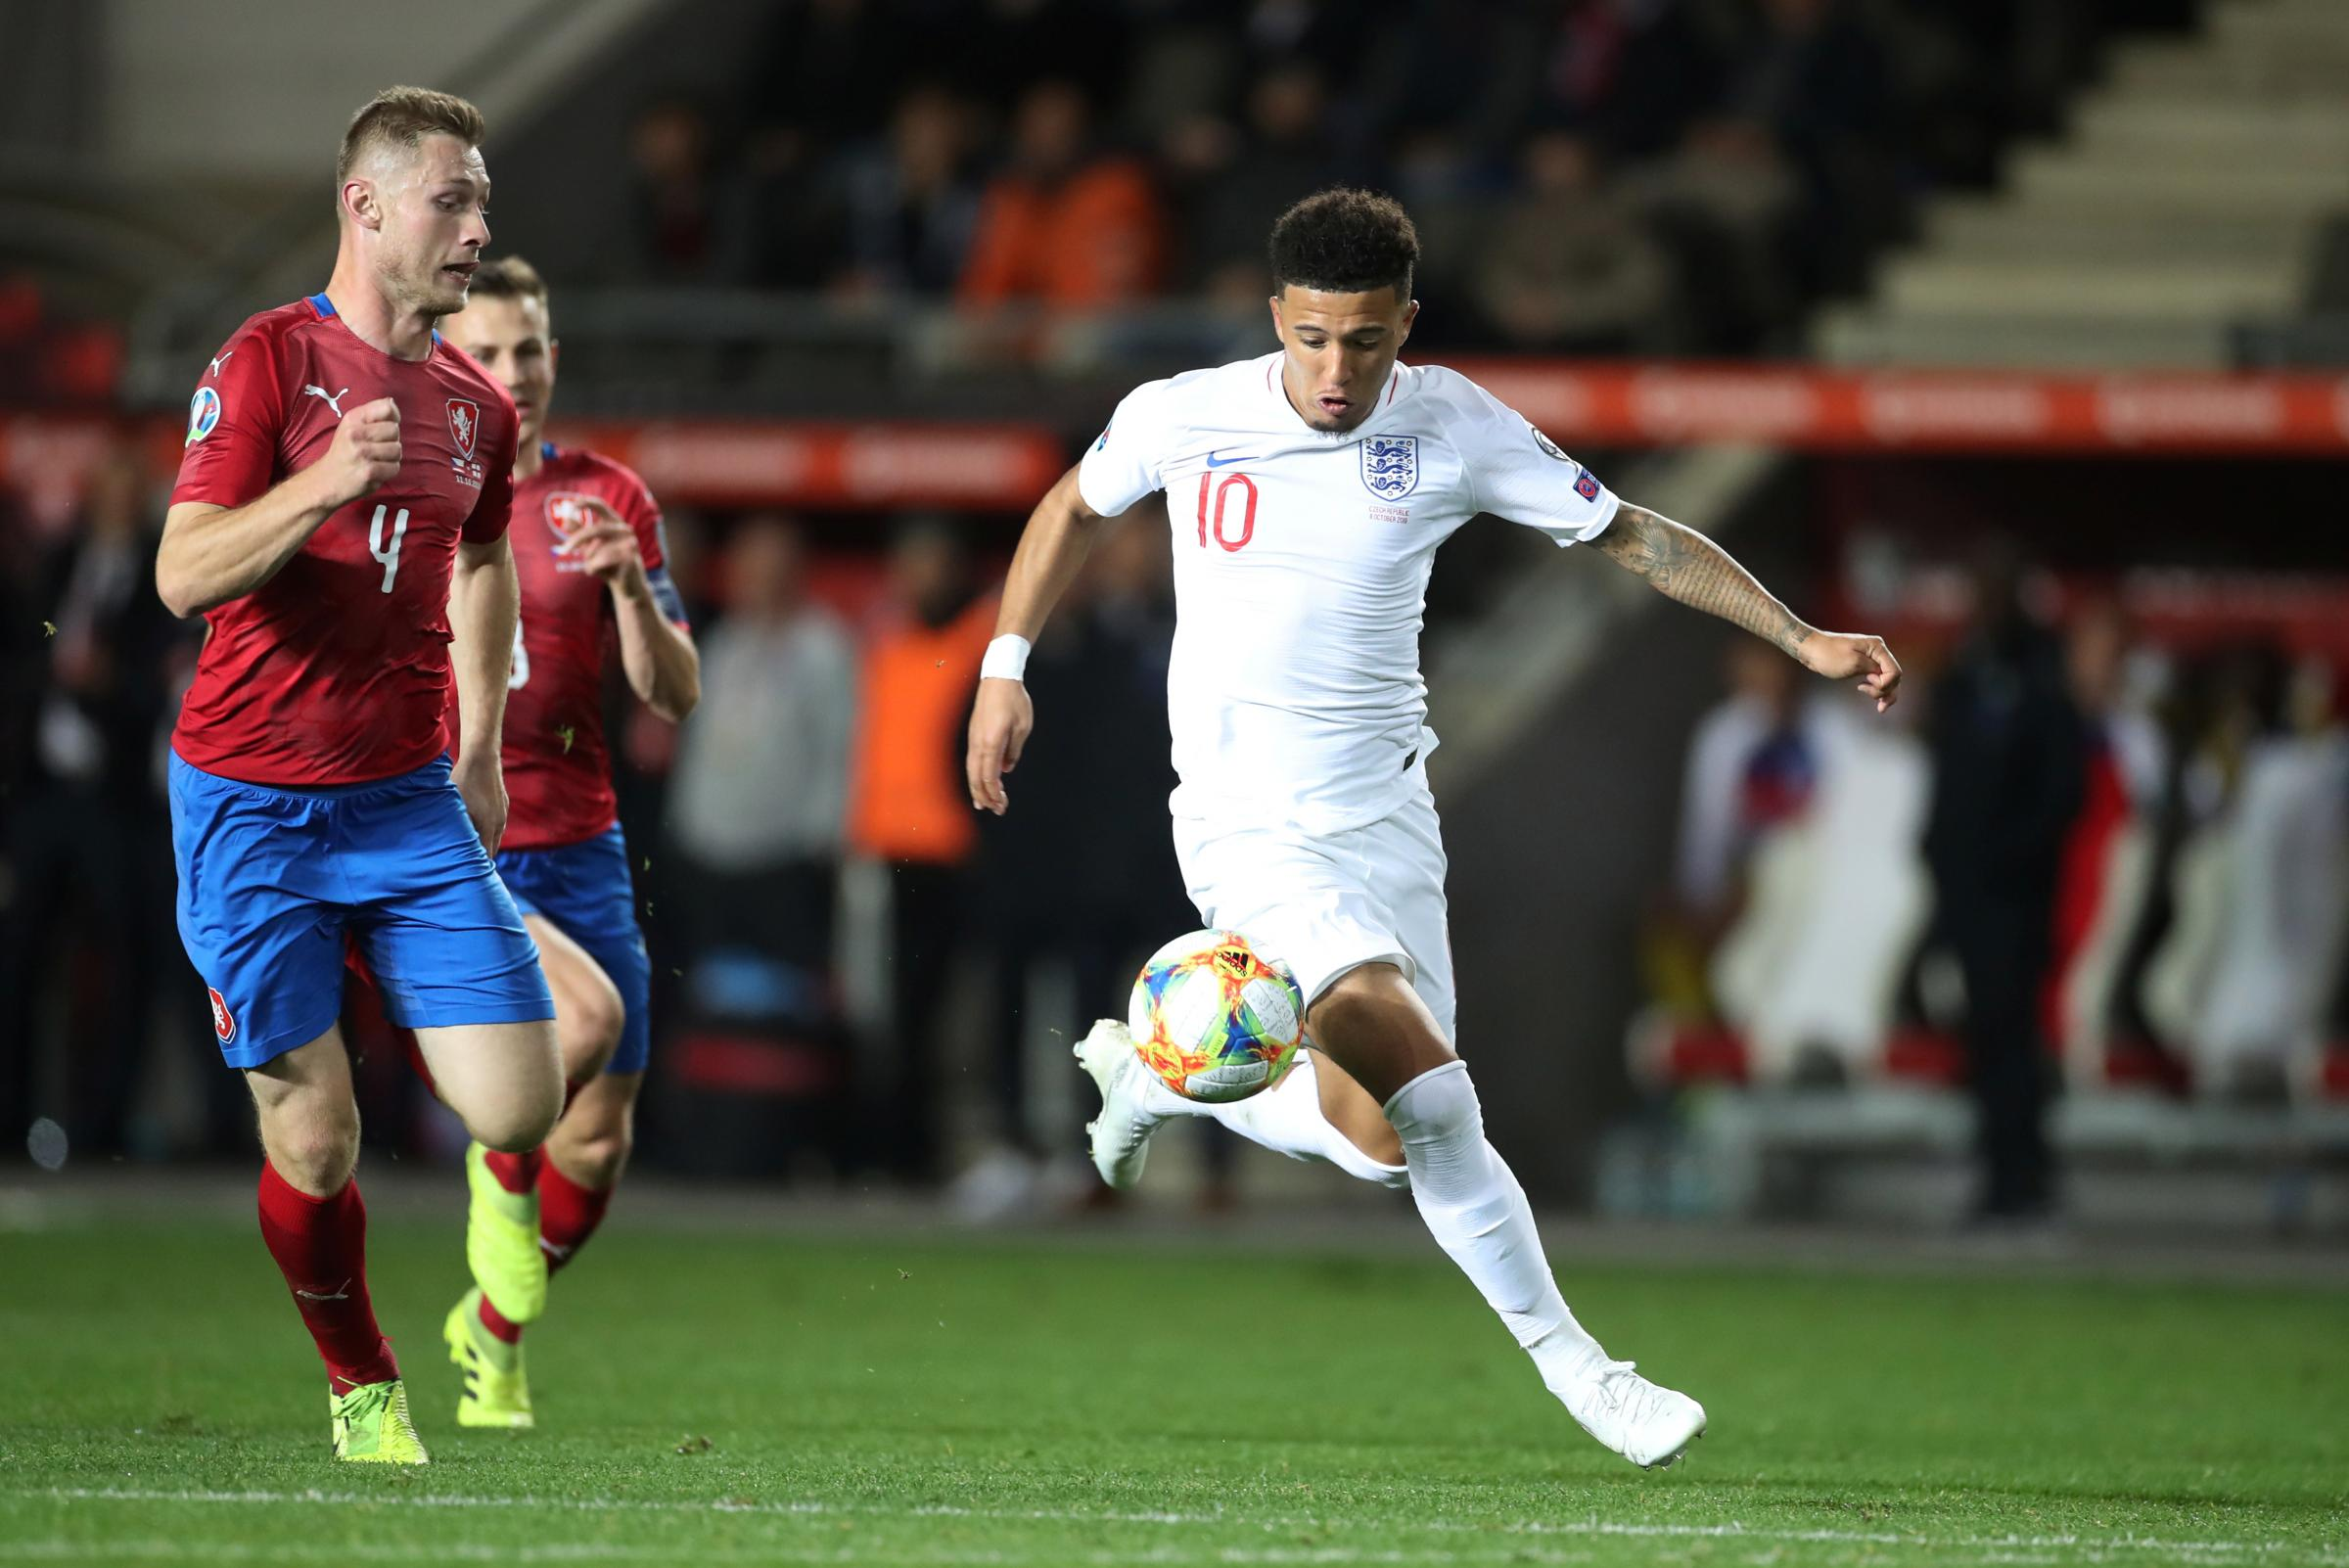 No evidence found of banned payment to Jadon Sancho's agent over Manchester City move from Watford